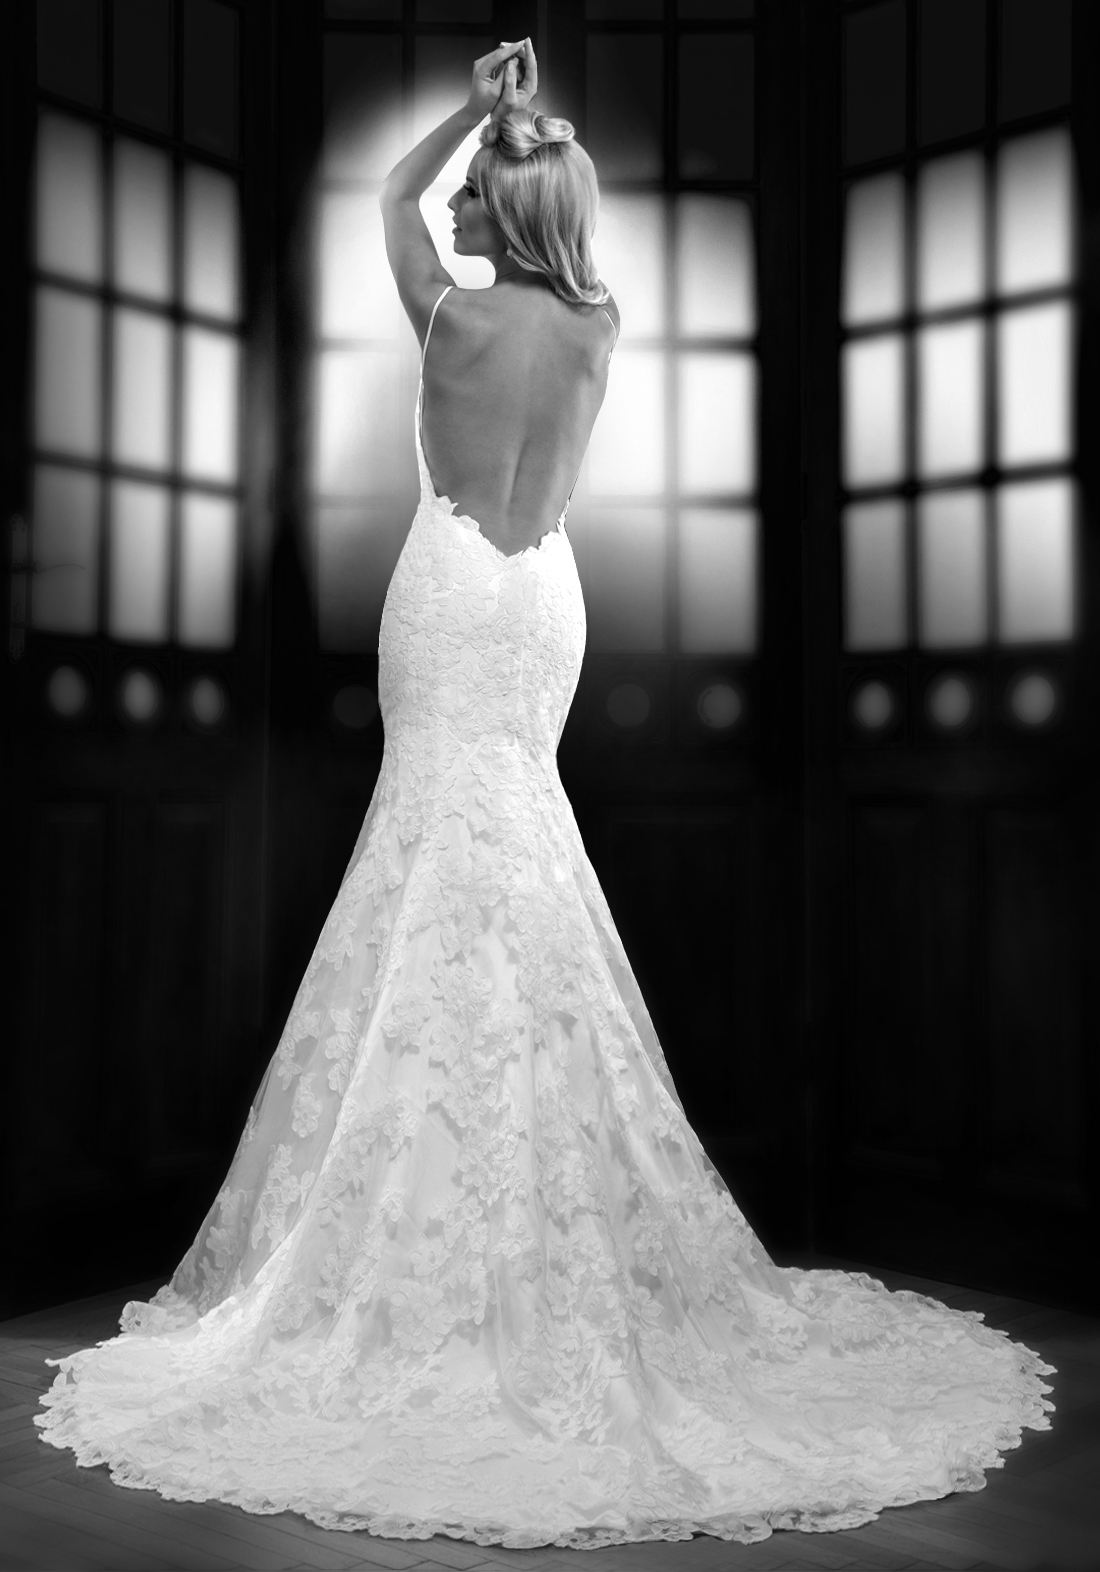 bien-savvy-wedding-dresses-2014-collection-26-01232014